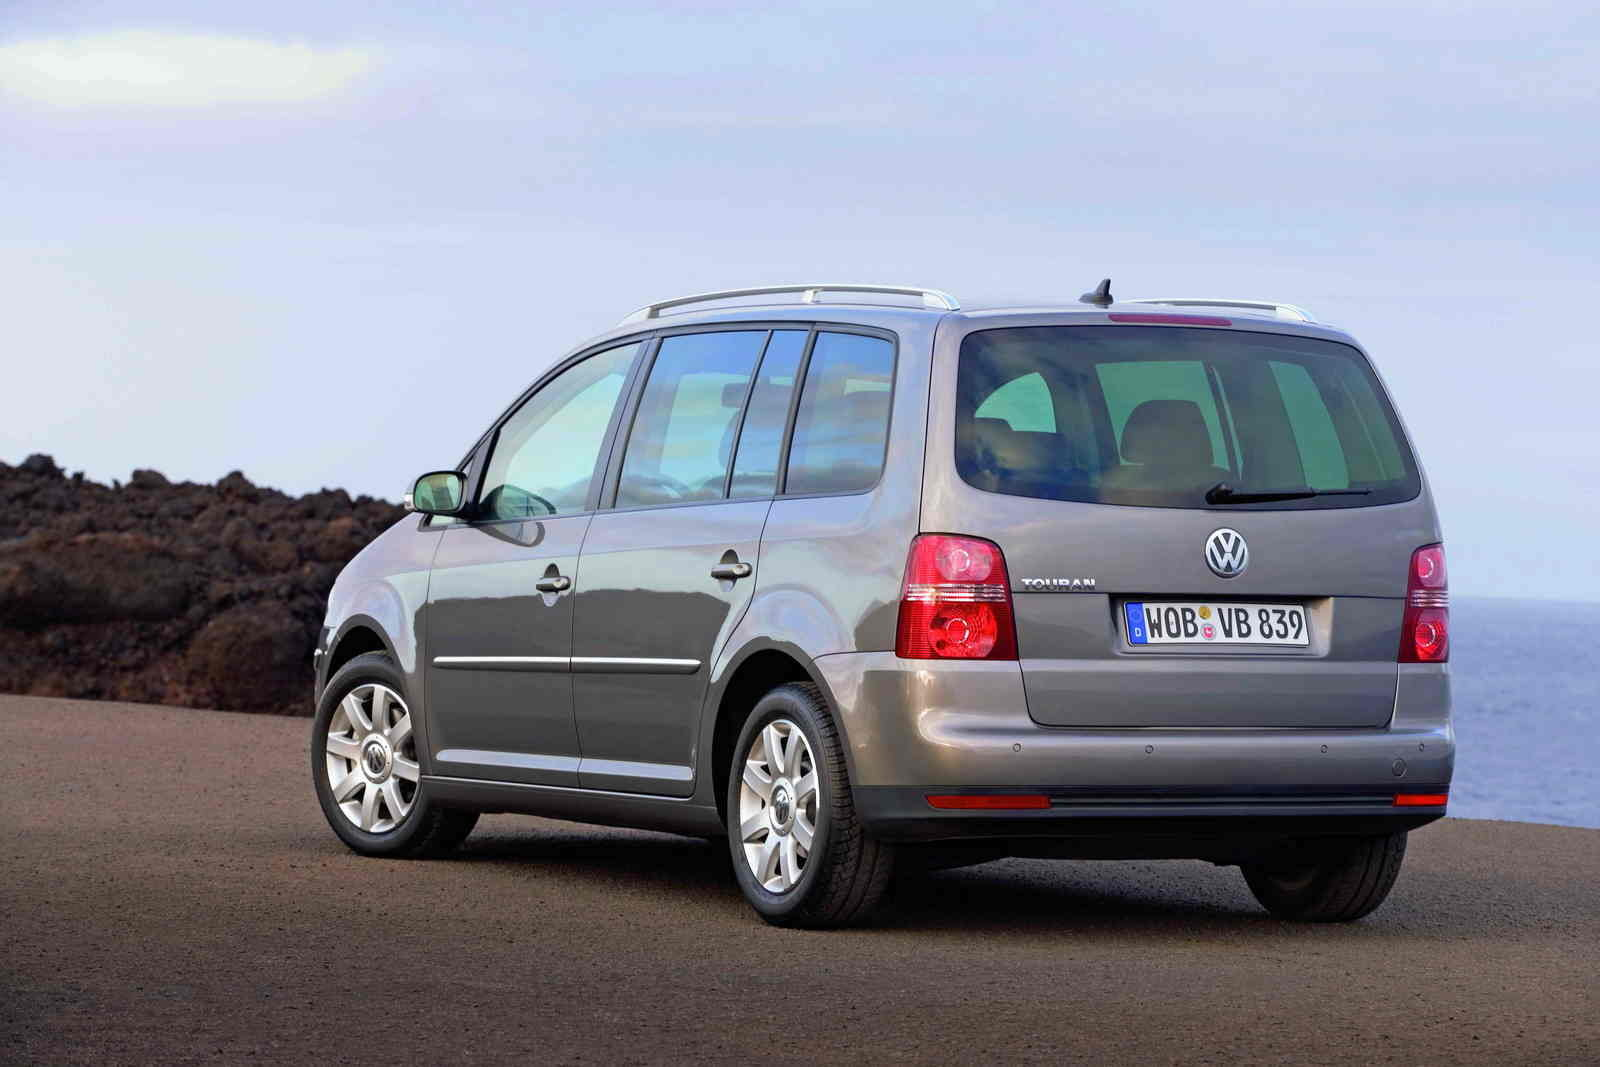 2007 volkswagen touran picture 101054 car review top speed. Black Bedroom Furniture Sets. Home Design Ideas